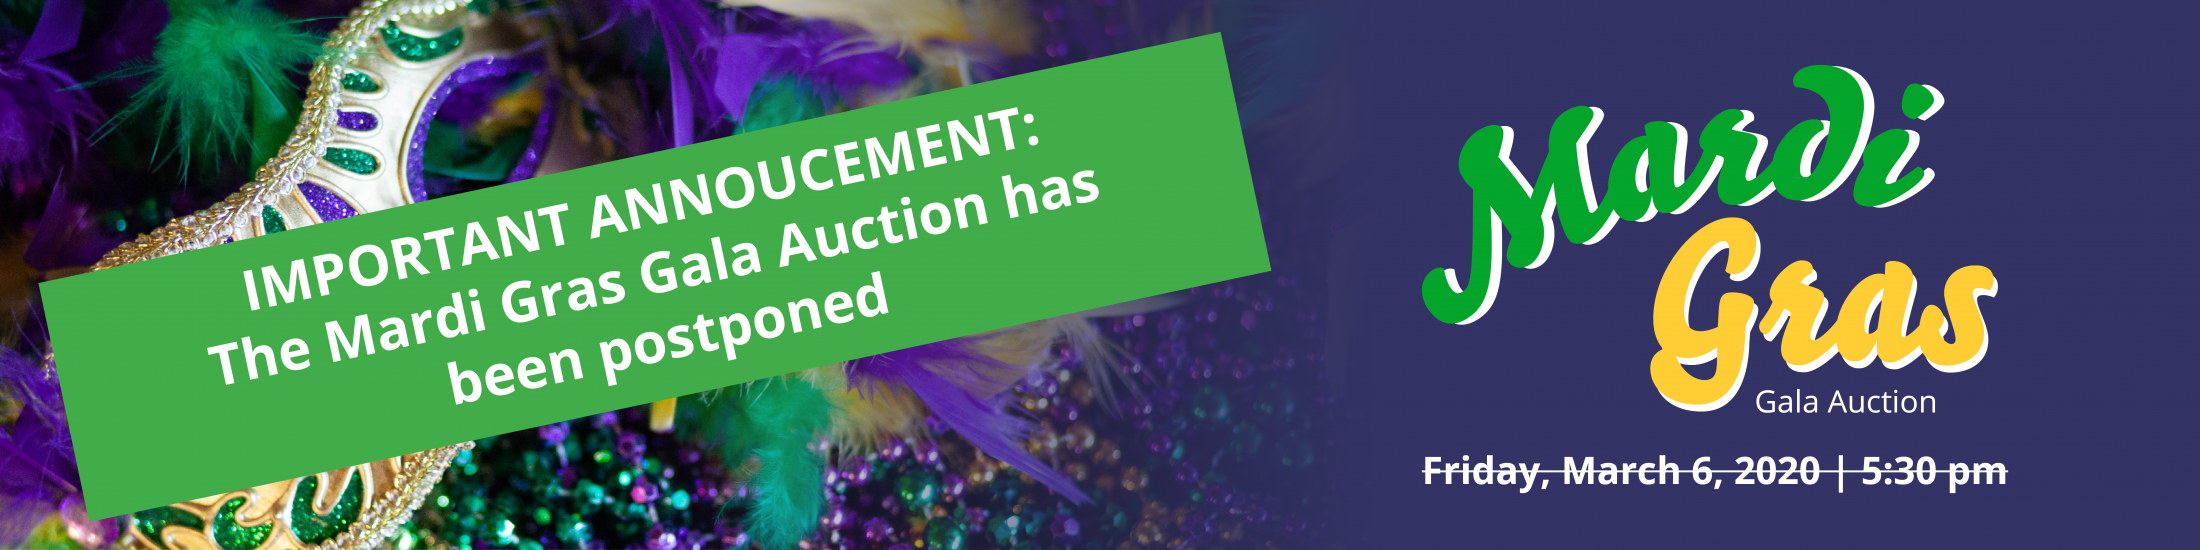 IMPORTANT ANNOUNCEMENT: the Mardi Gras Event has been postponed